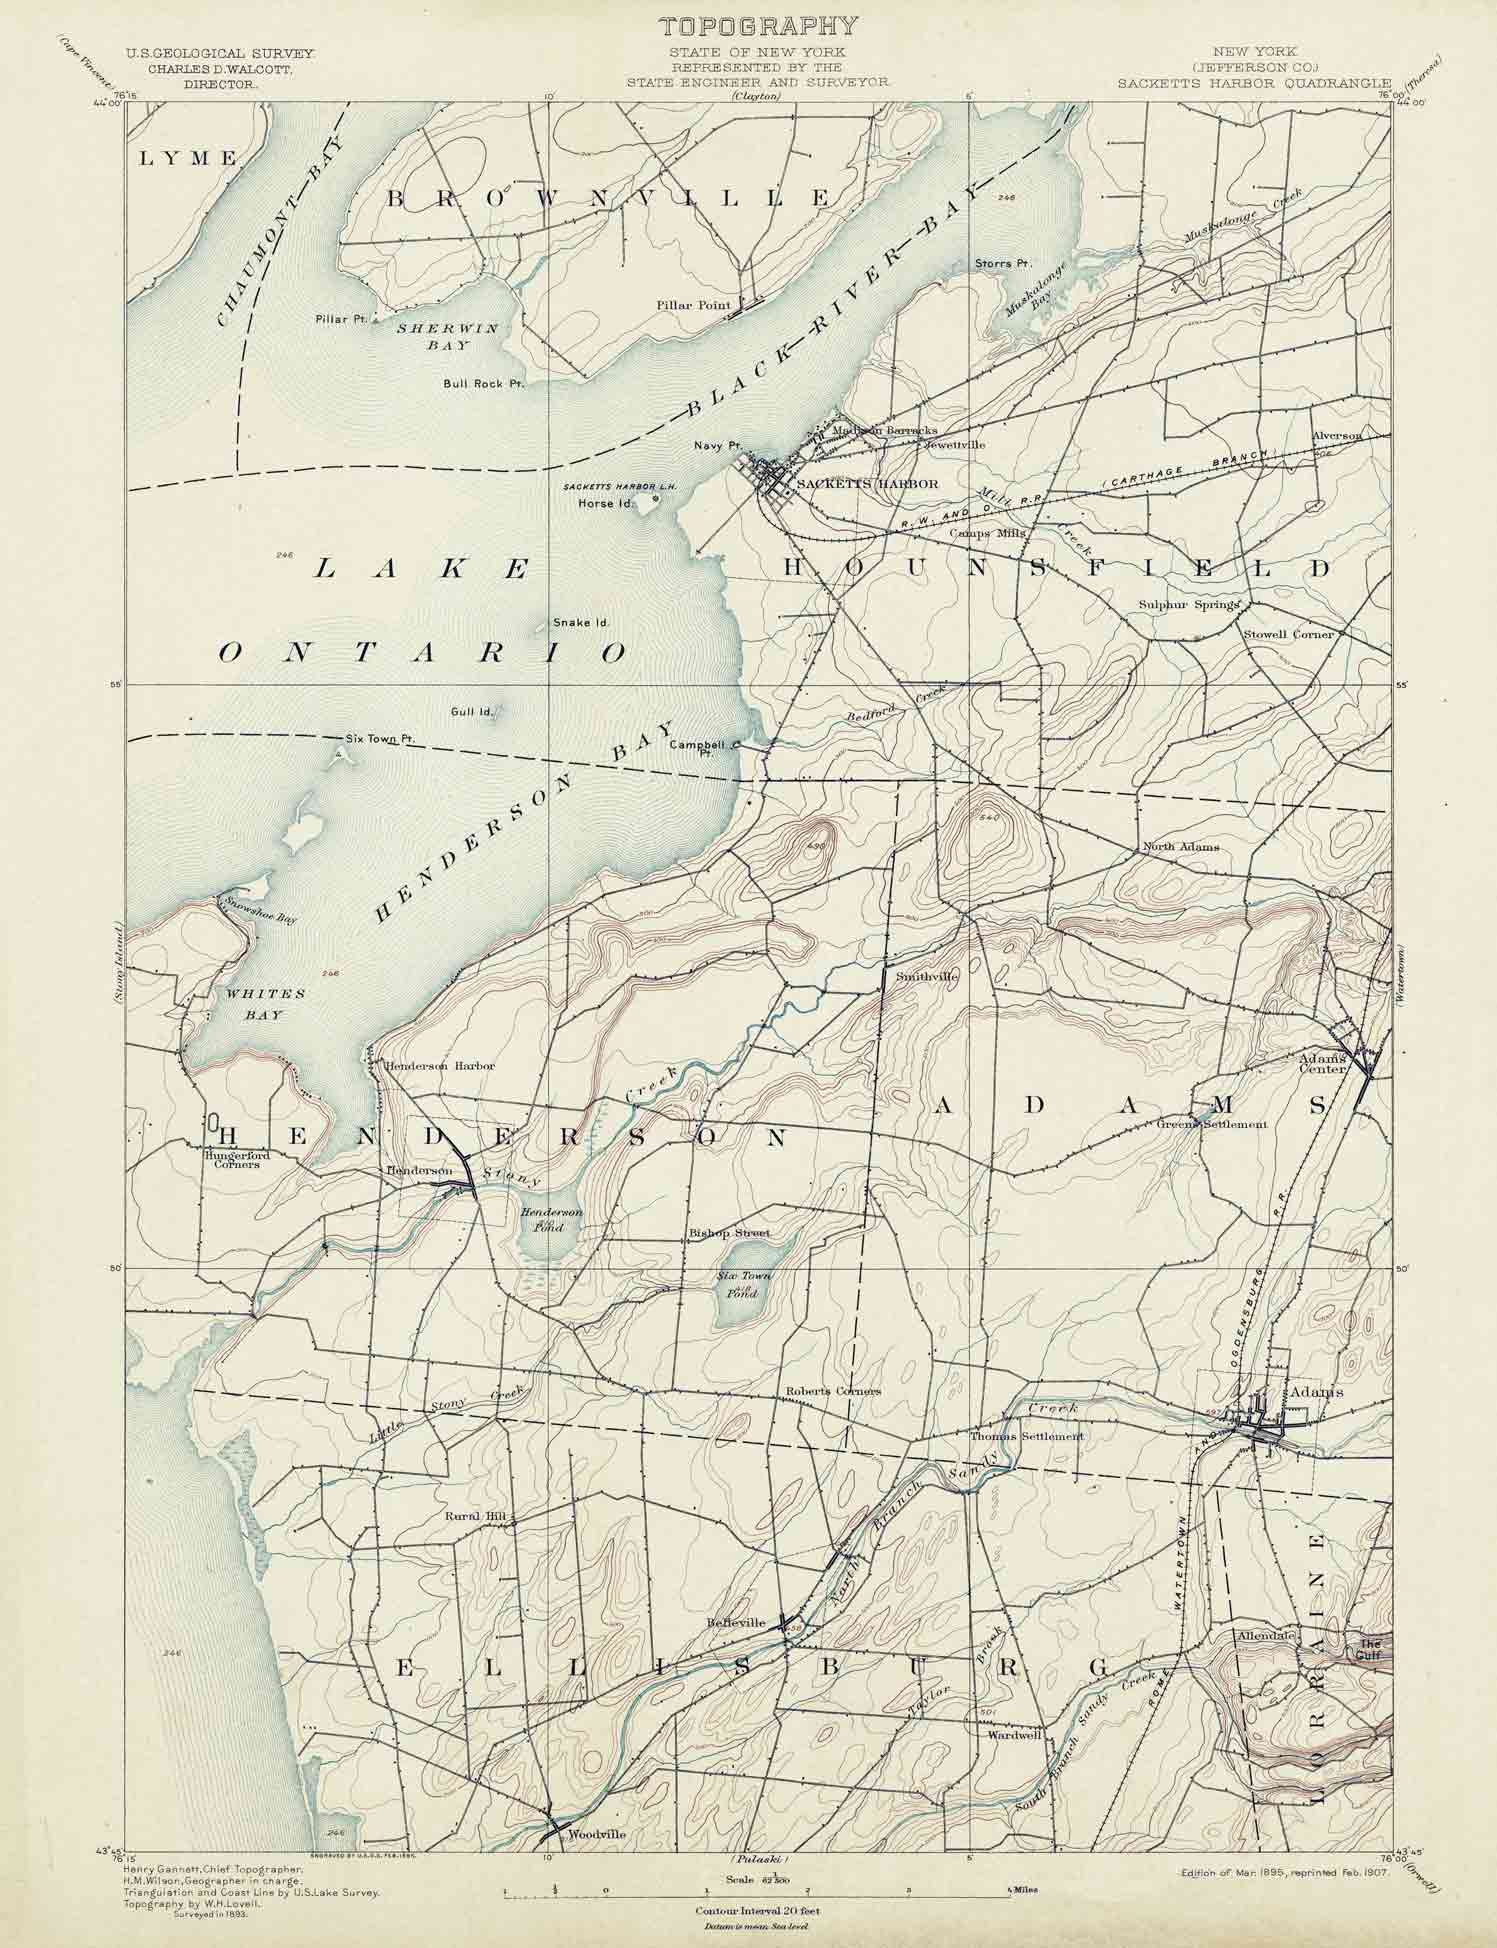 Old USGS Topo Maps Of Jefferson County New York - Nyc map topographic